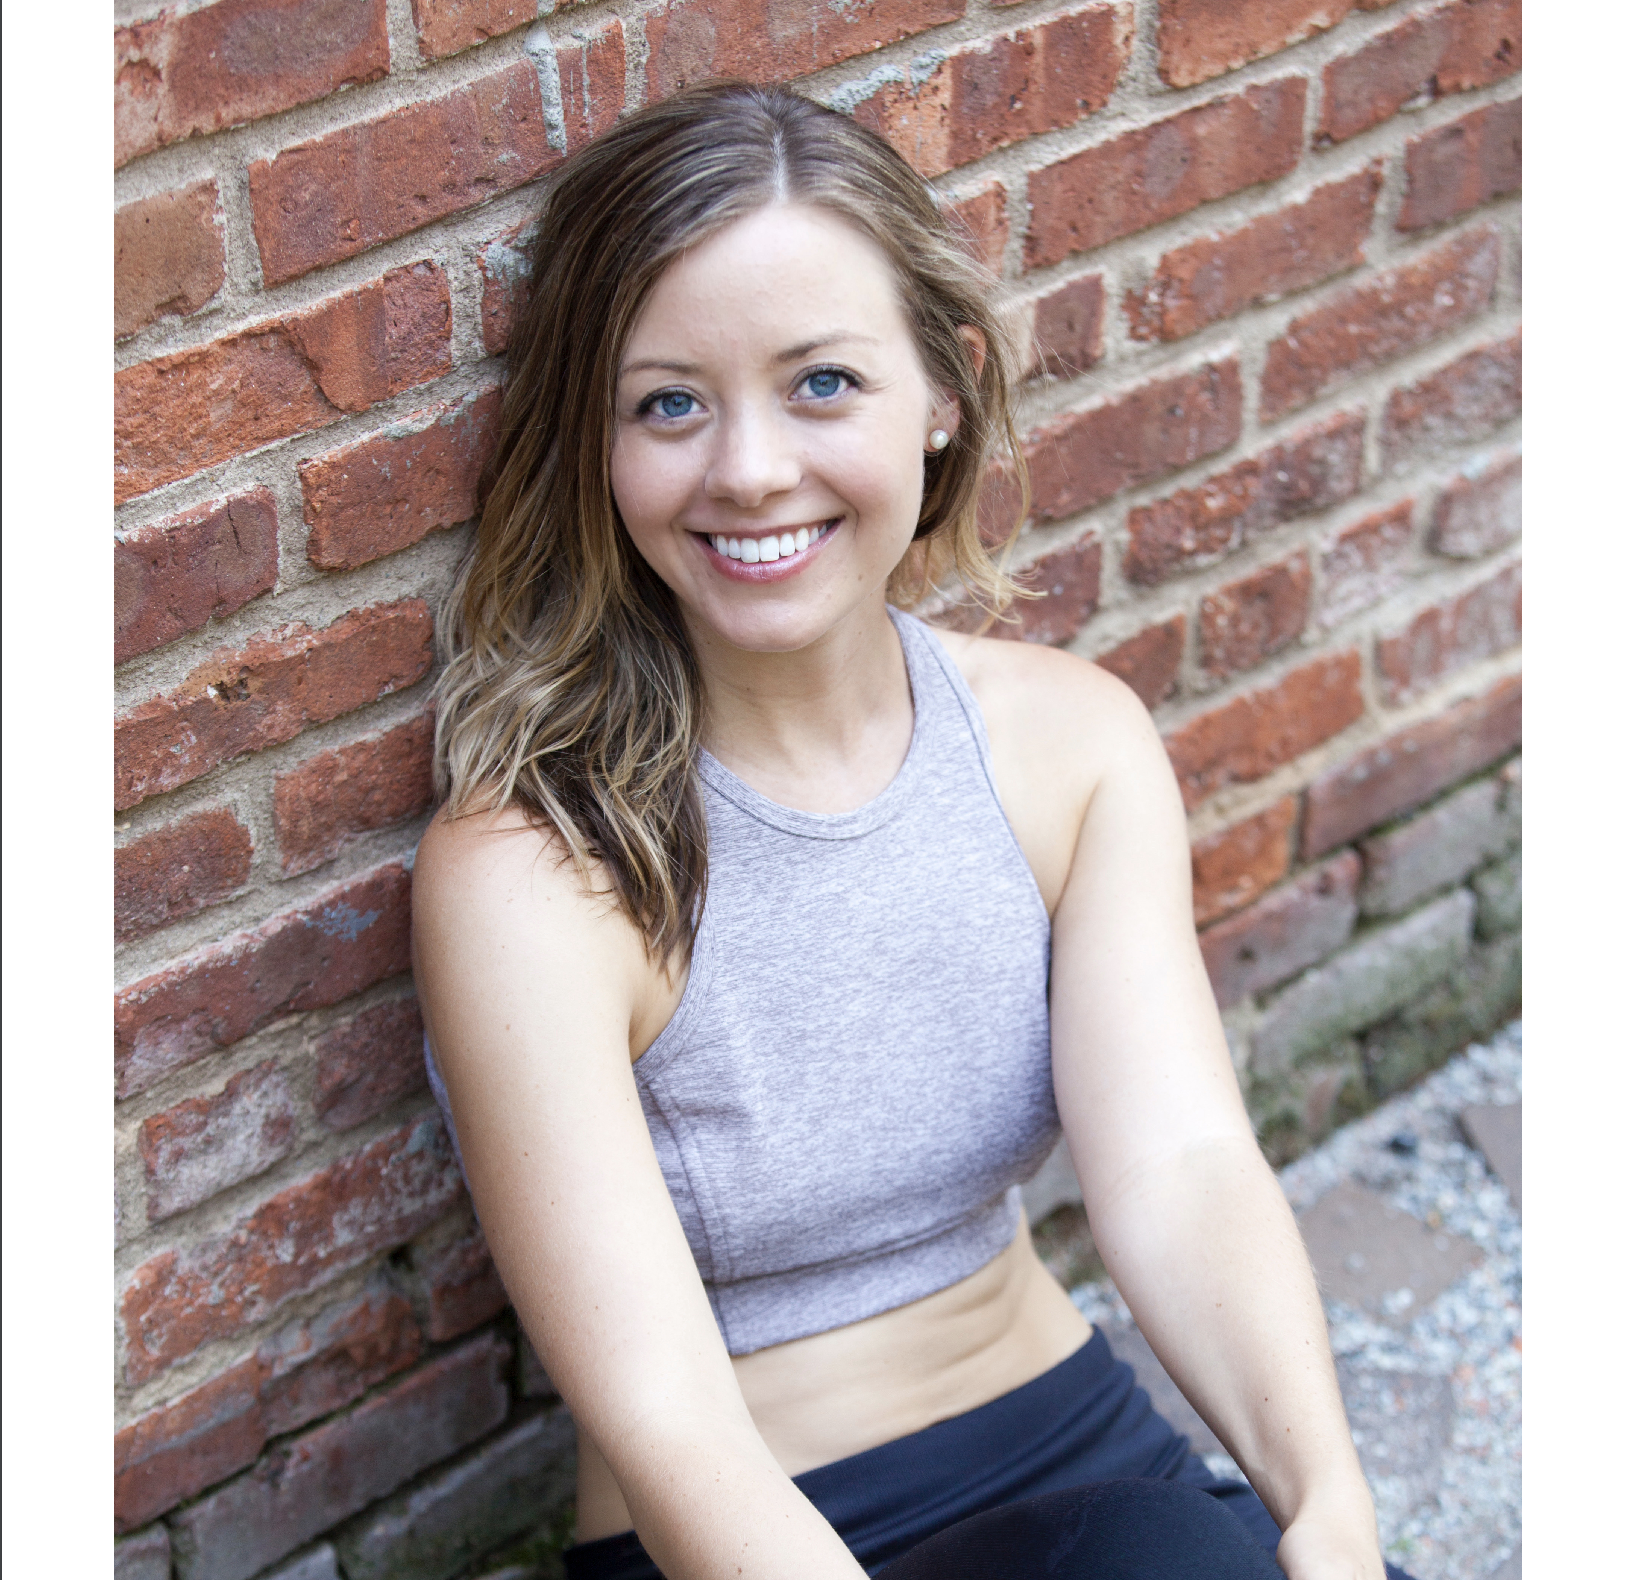 Natalie Tyson-Multhaup in gray crop top leaning against brick wall smiling